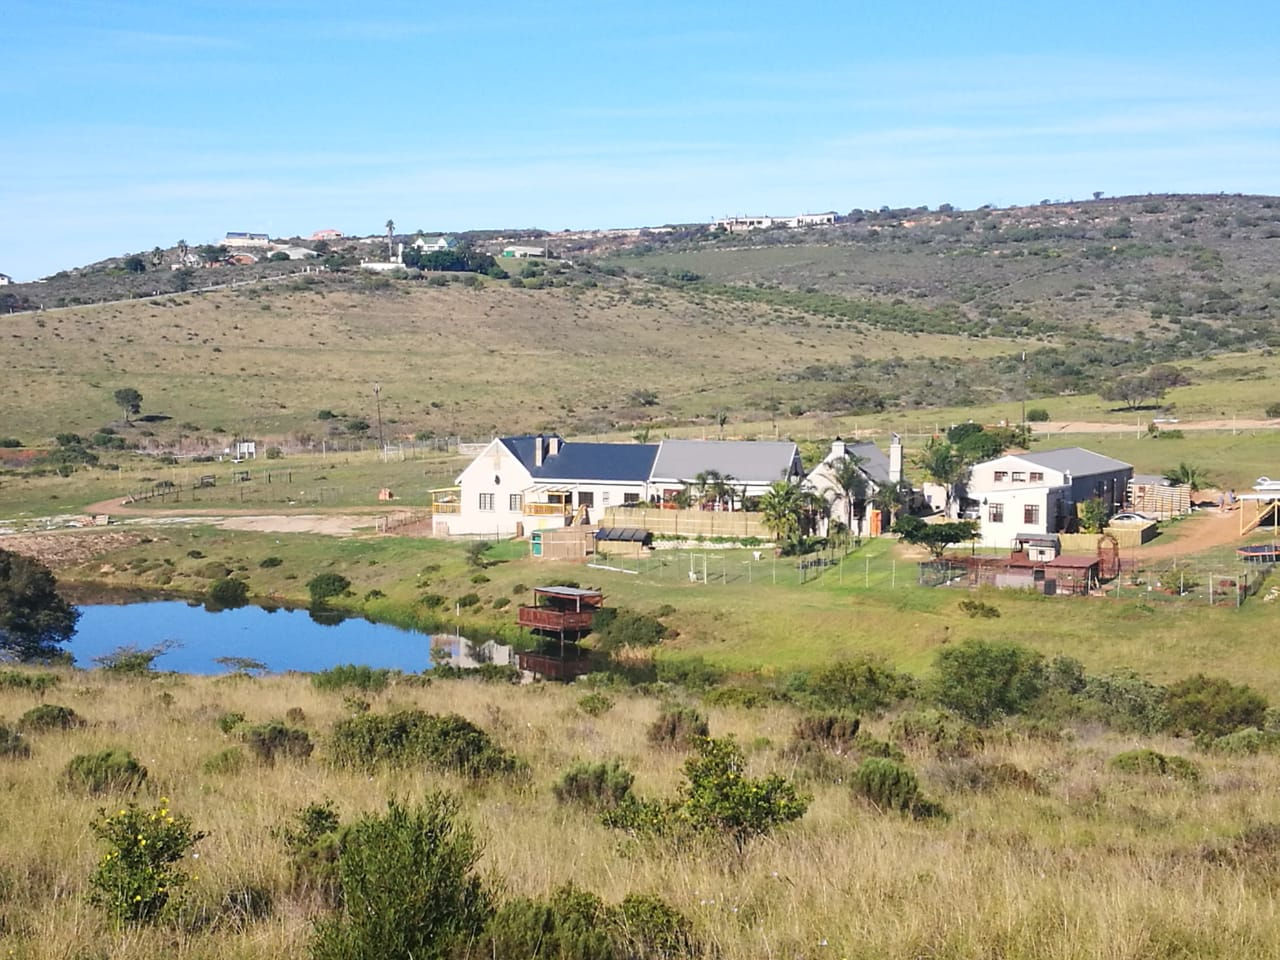 Property Rentals & Holiday Accommodation - Country Houses in Aalwyndal, Mossel Bay, Garden Route, South Africa